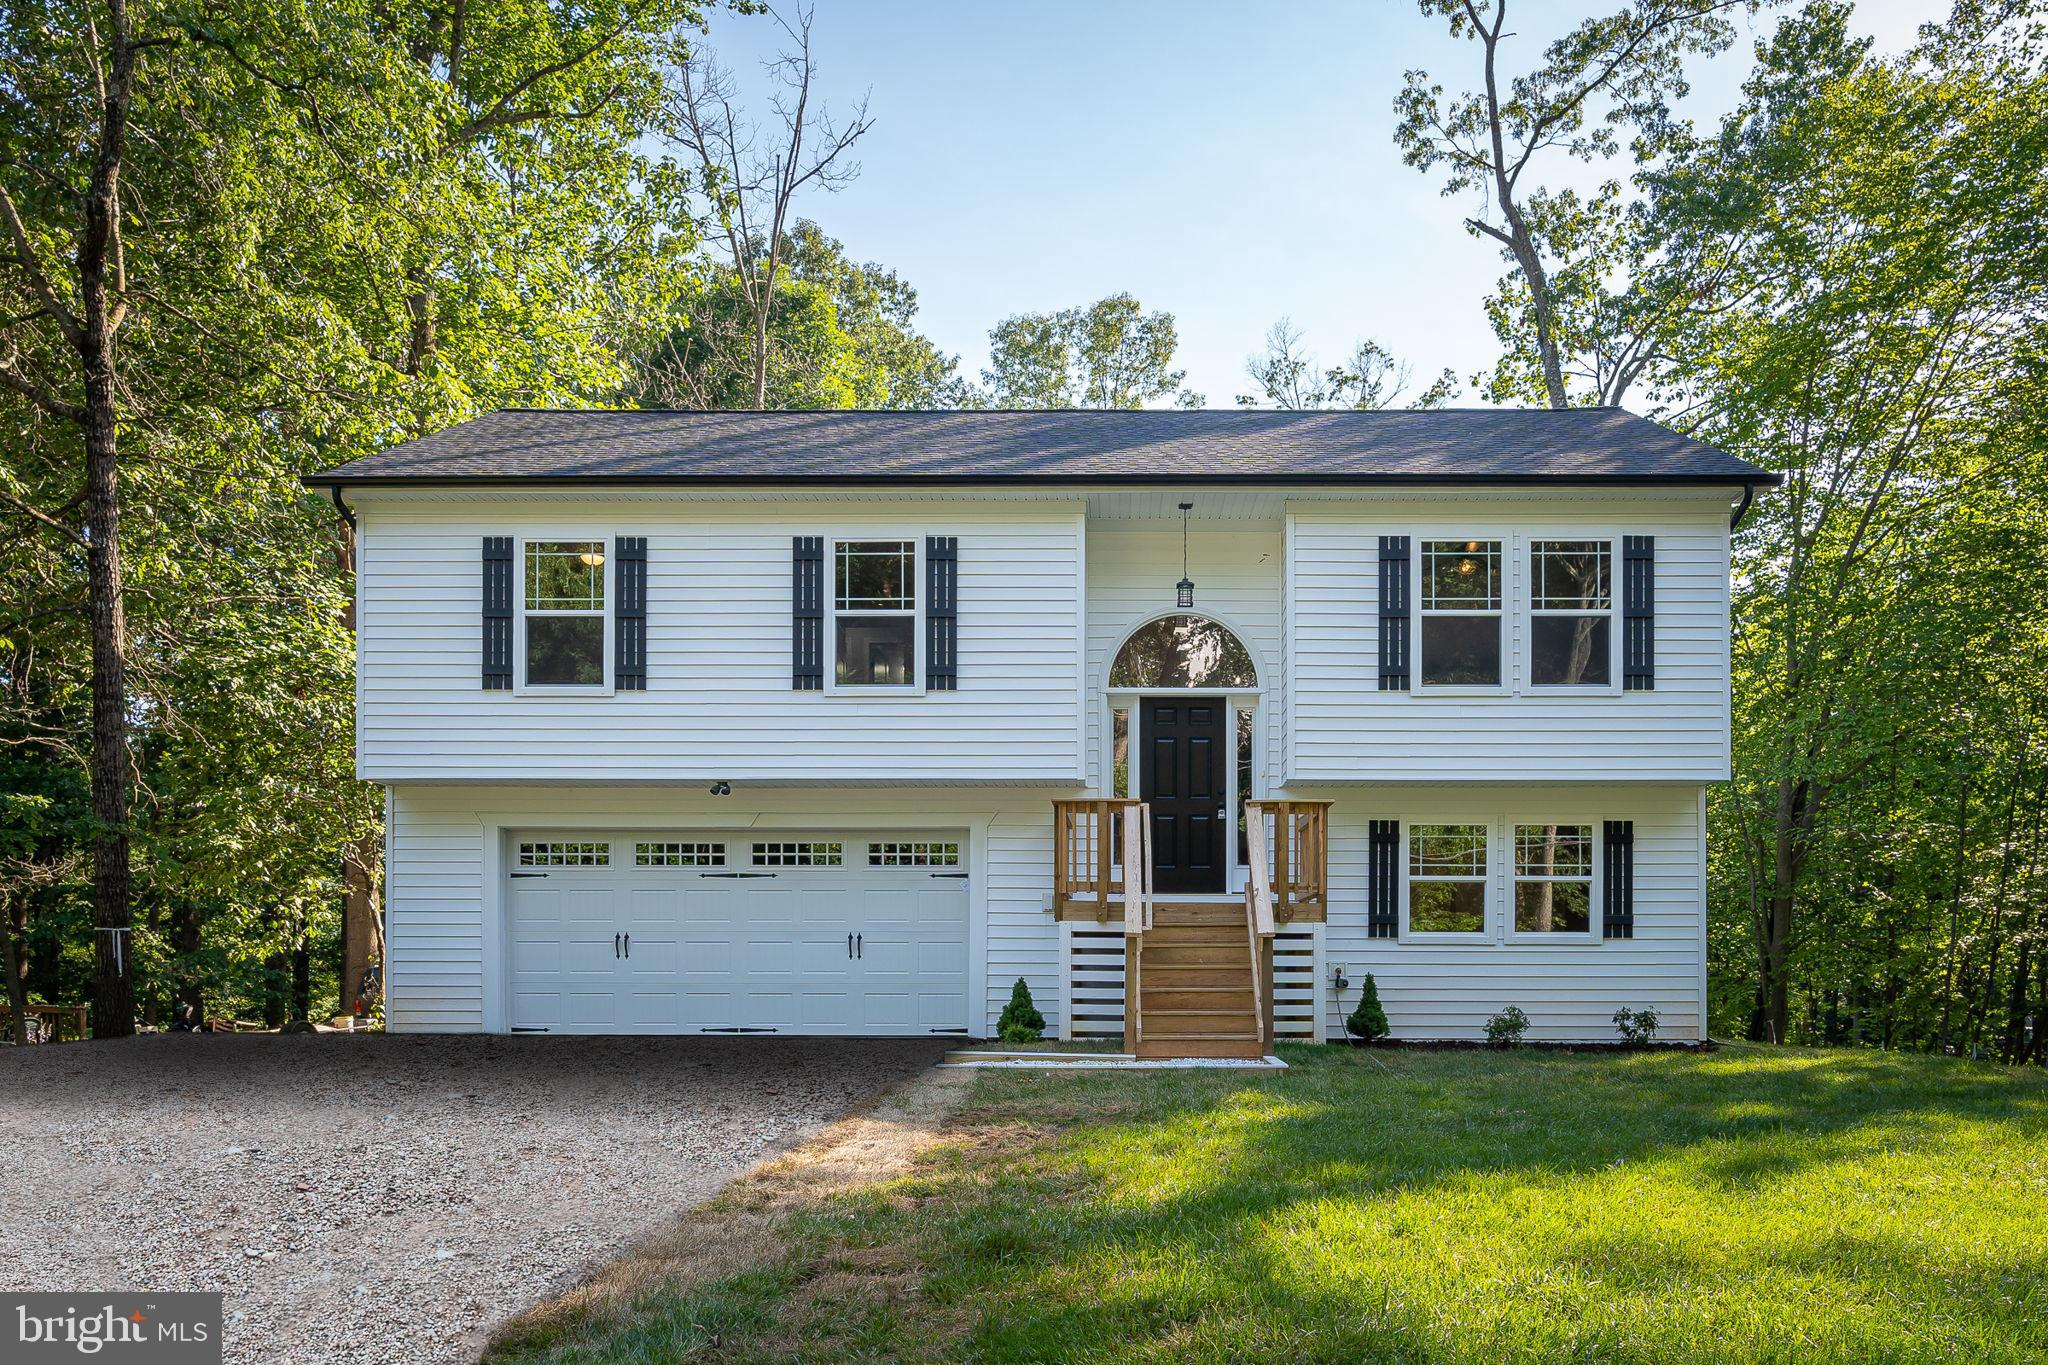 16 Crestview Dr, Stafford, VA, 22556